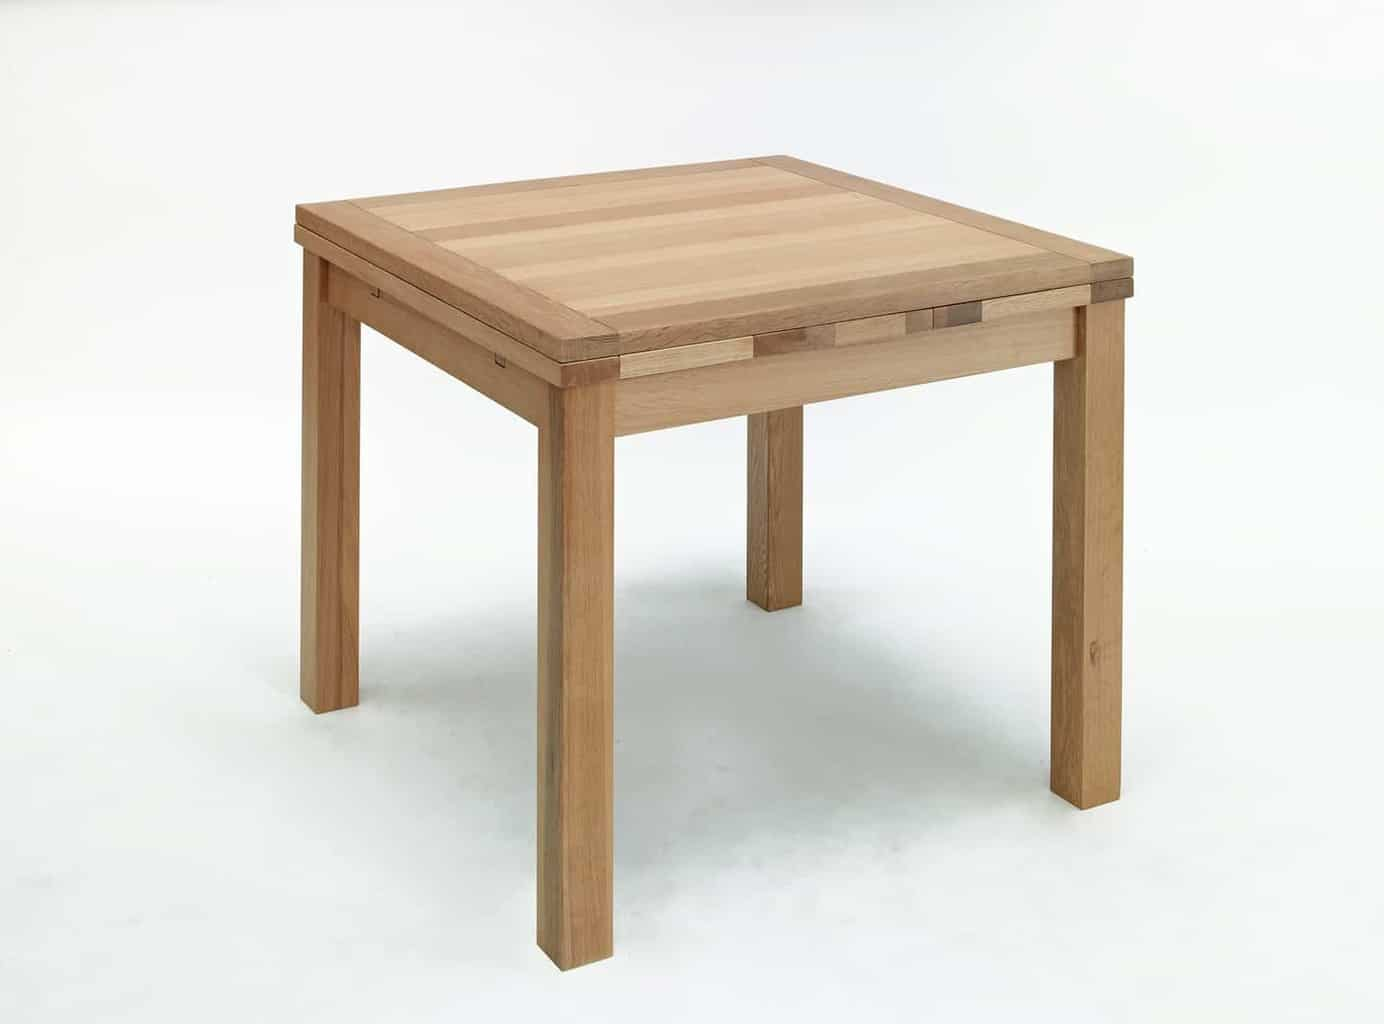 Contemporary Oak Dining Tables Extendable: Kingston Contemporary Solid Oak Small Square Extending